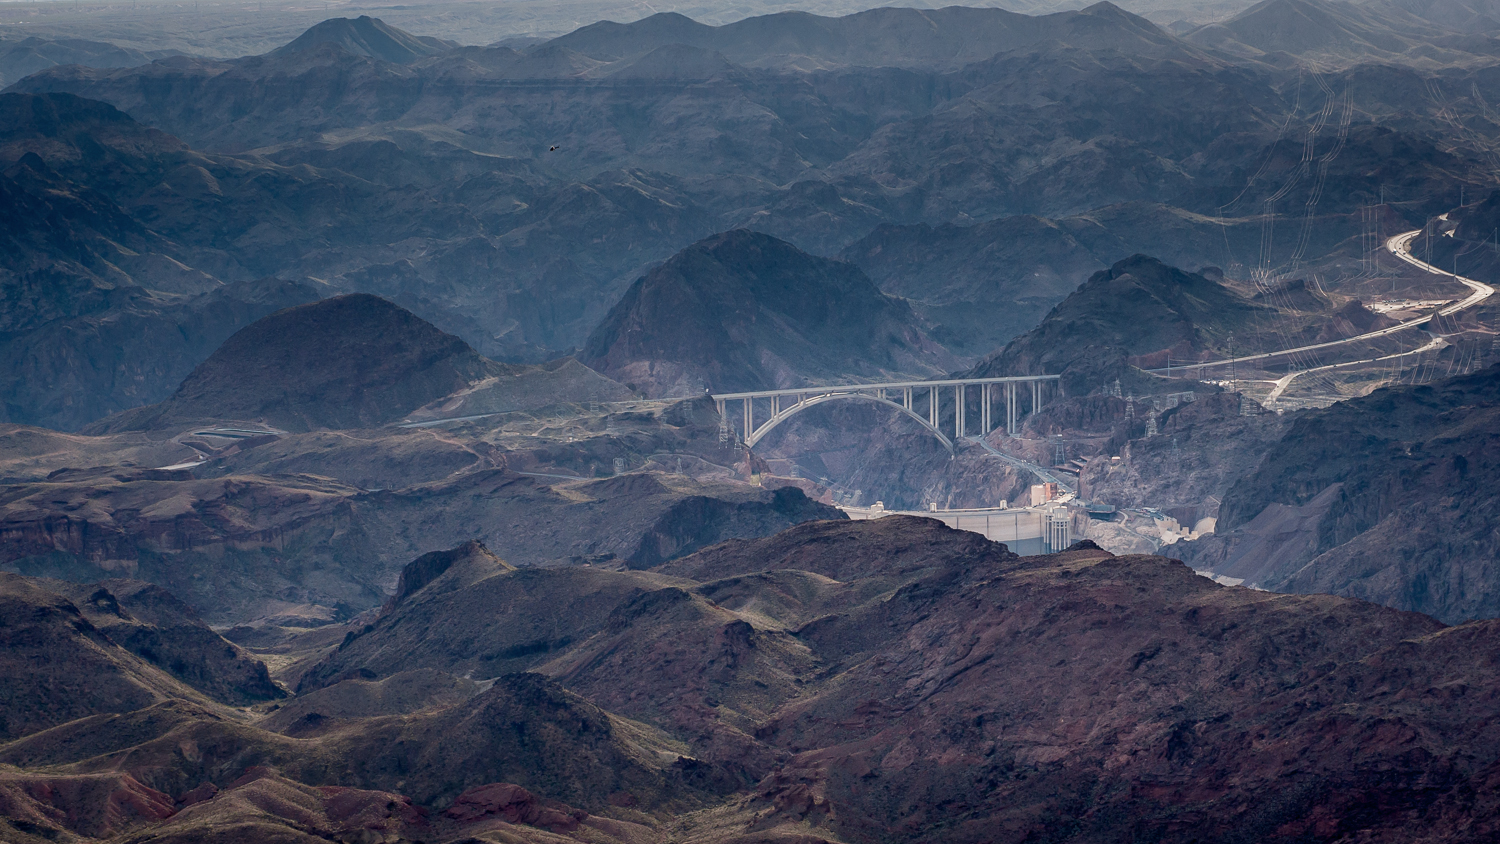 The  Mike O'Callaghan–Pat Tillman Memorial Bridge and Hoover Dam as seen from Fortification Hill